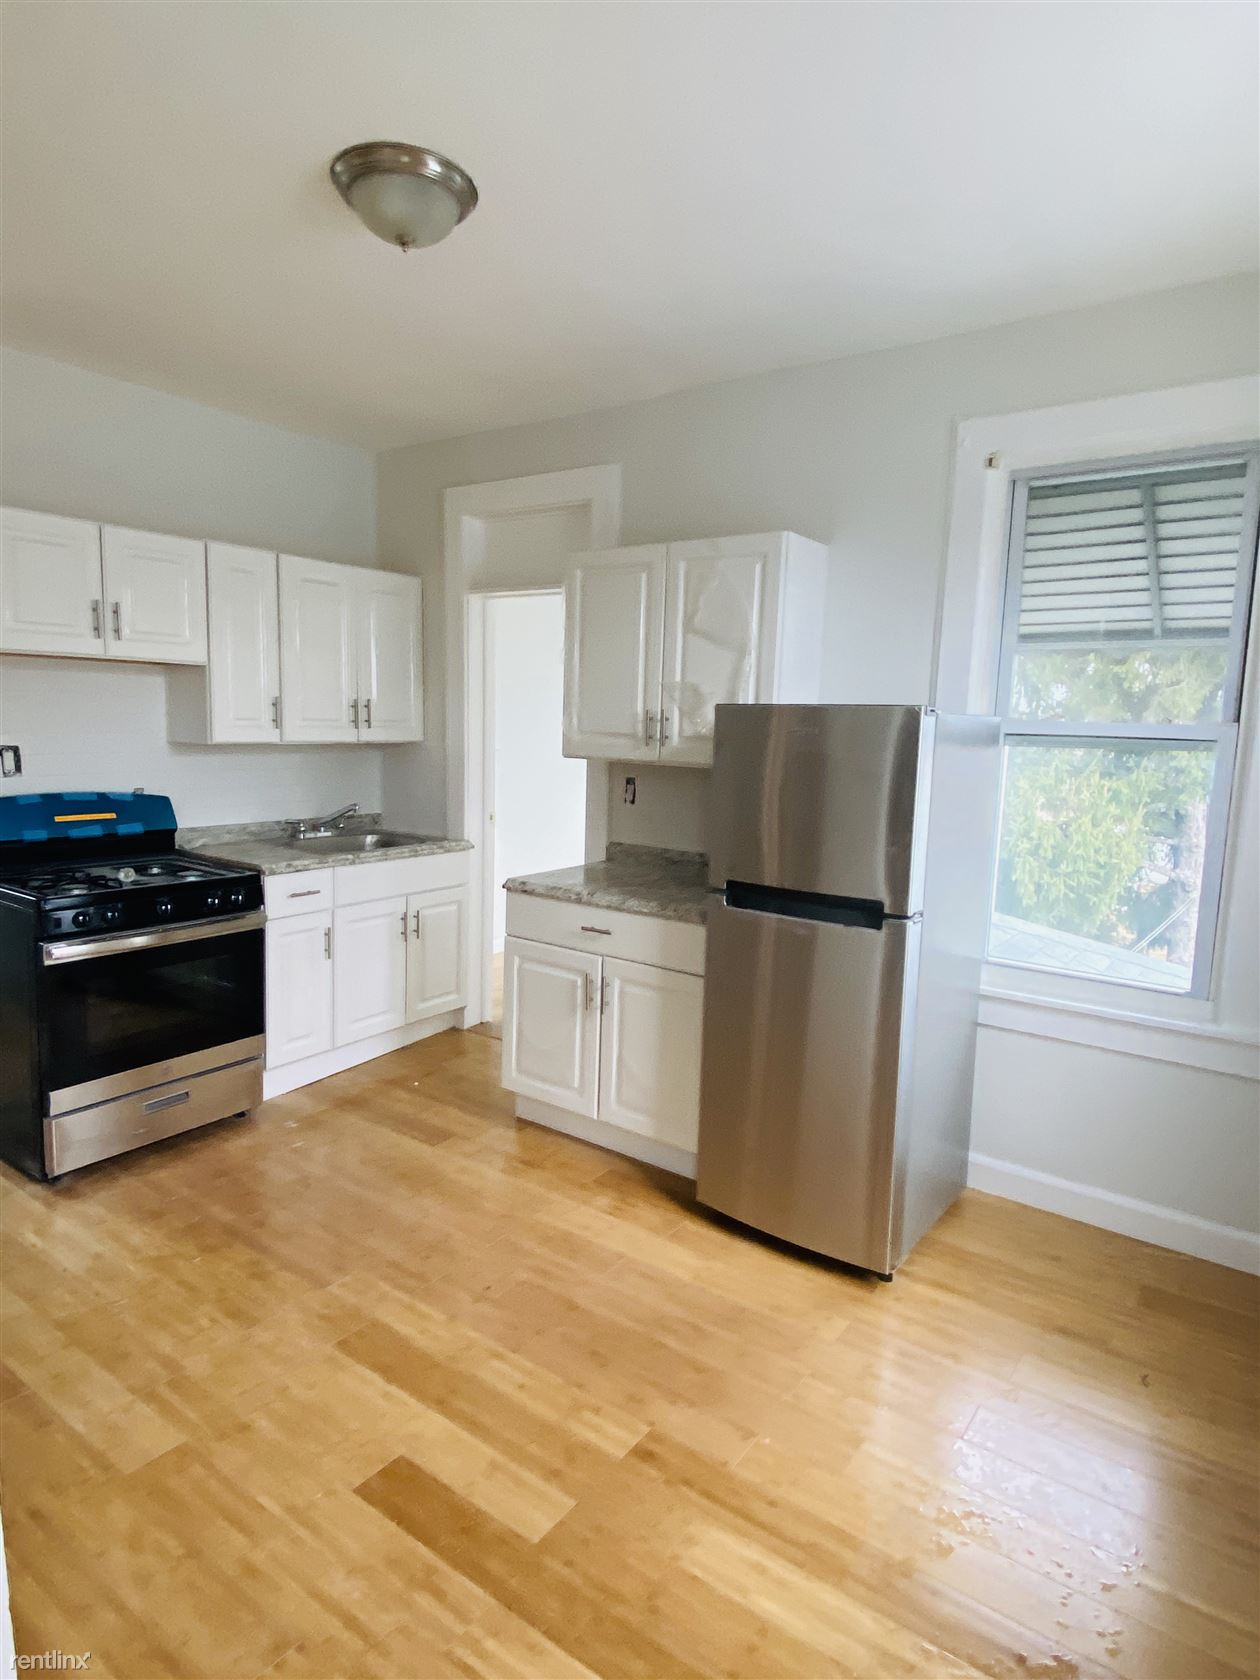 Mansion st and Frey ave, Yonkers, NY - $2,500